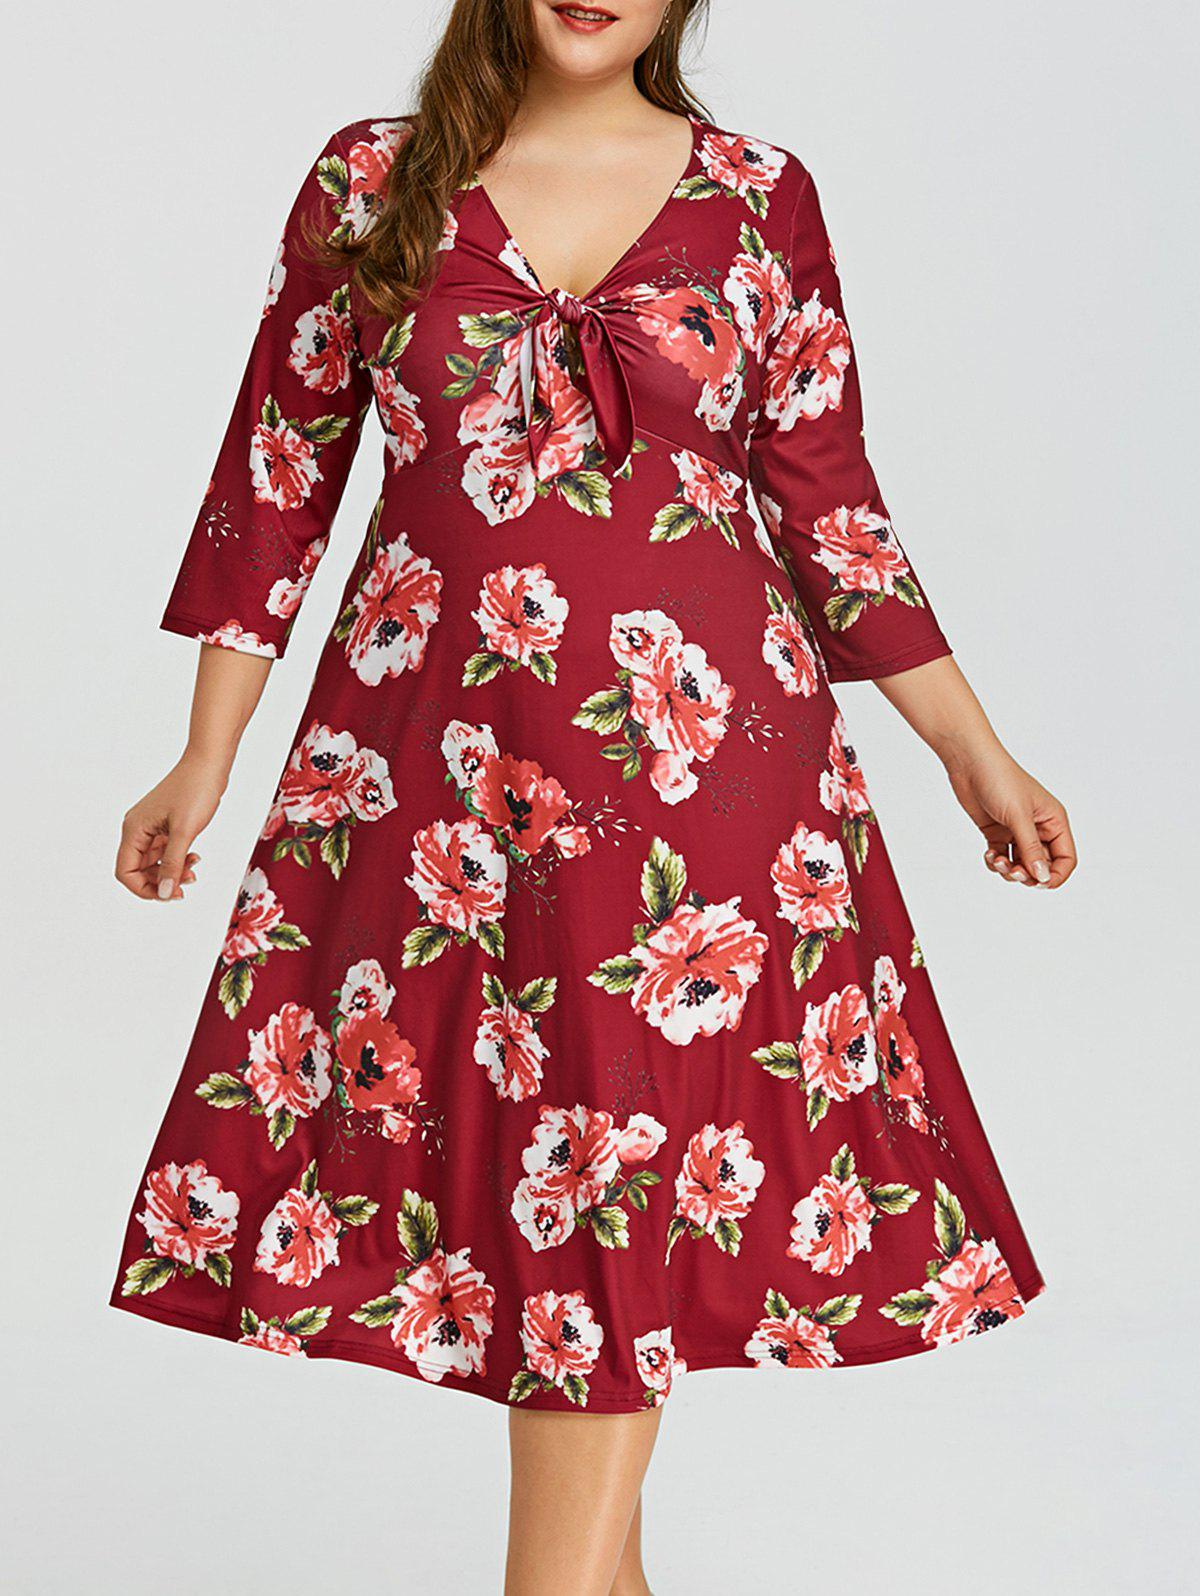 Plus Size Floral Empire Waist Hawaiian Dress - WINE RED XL